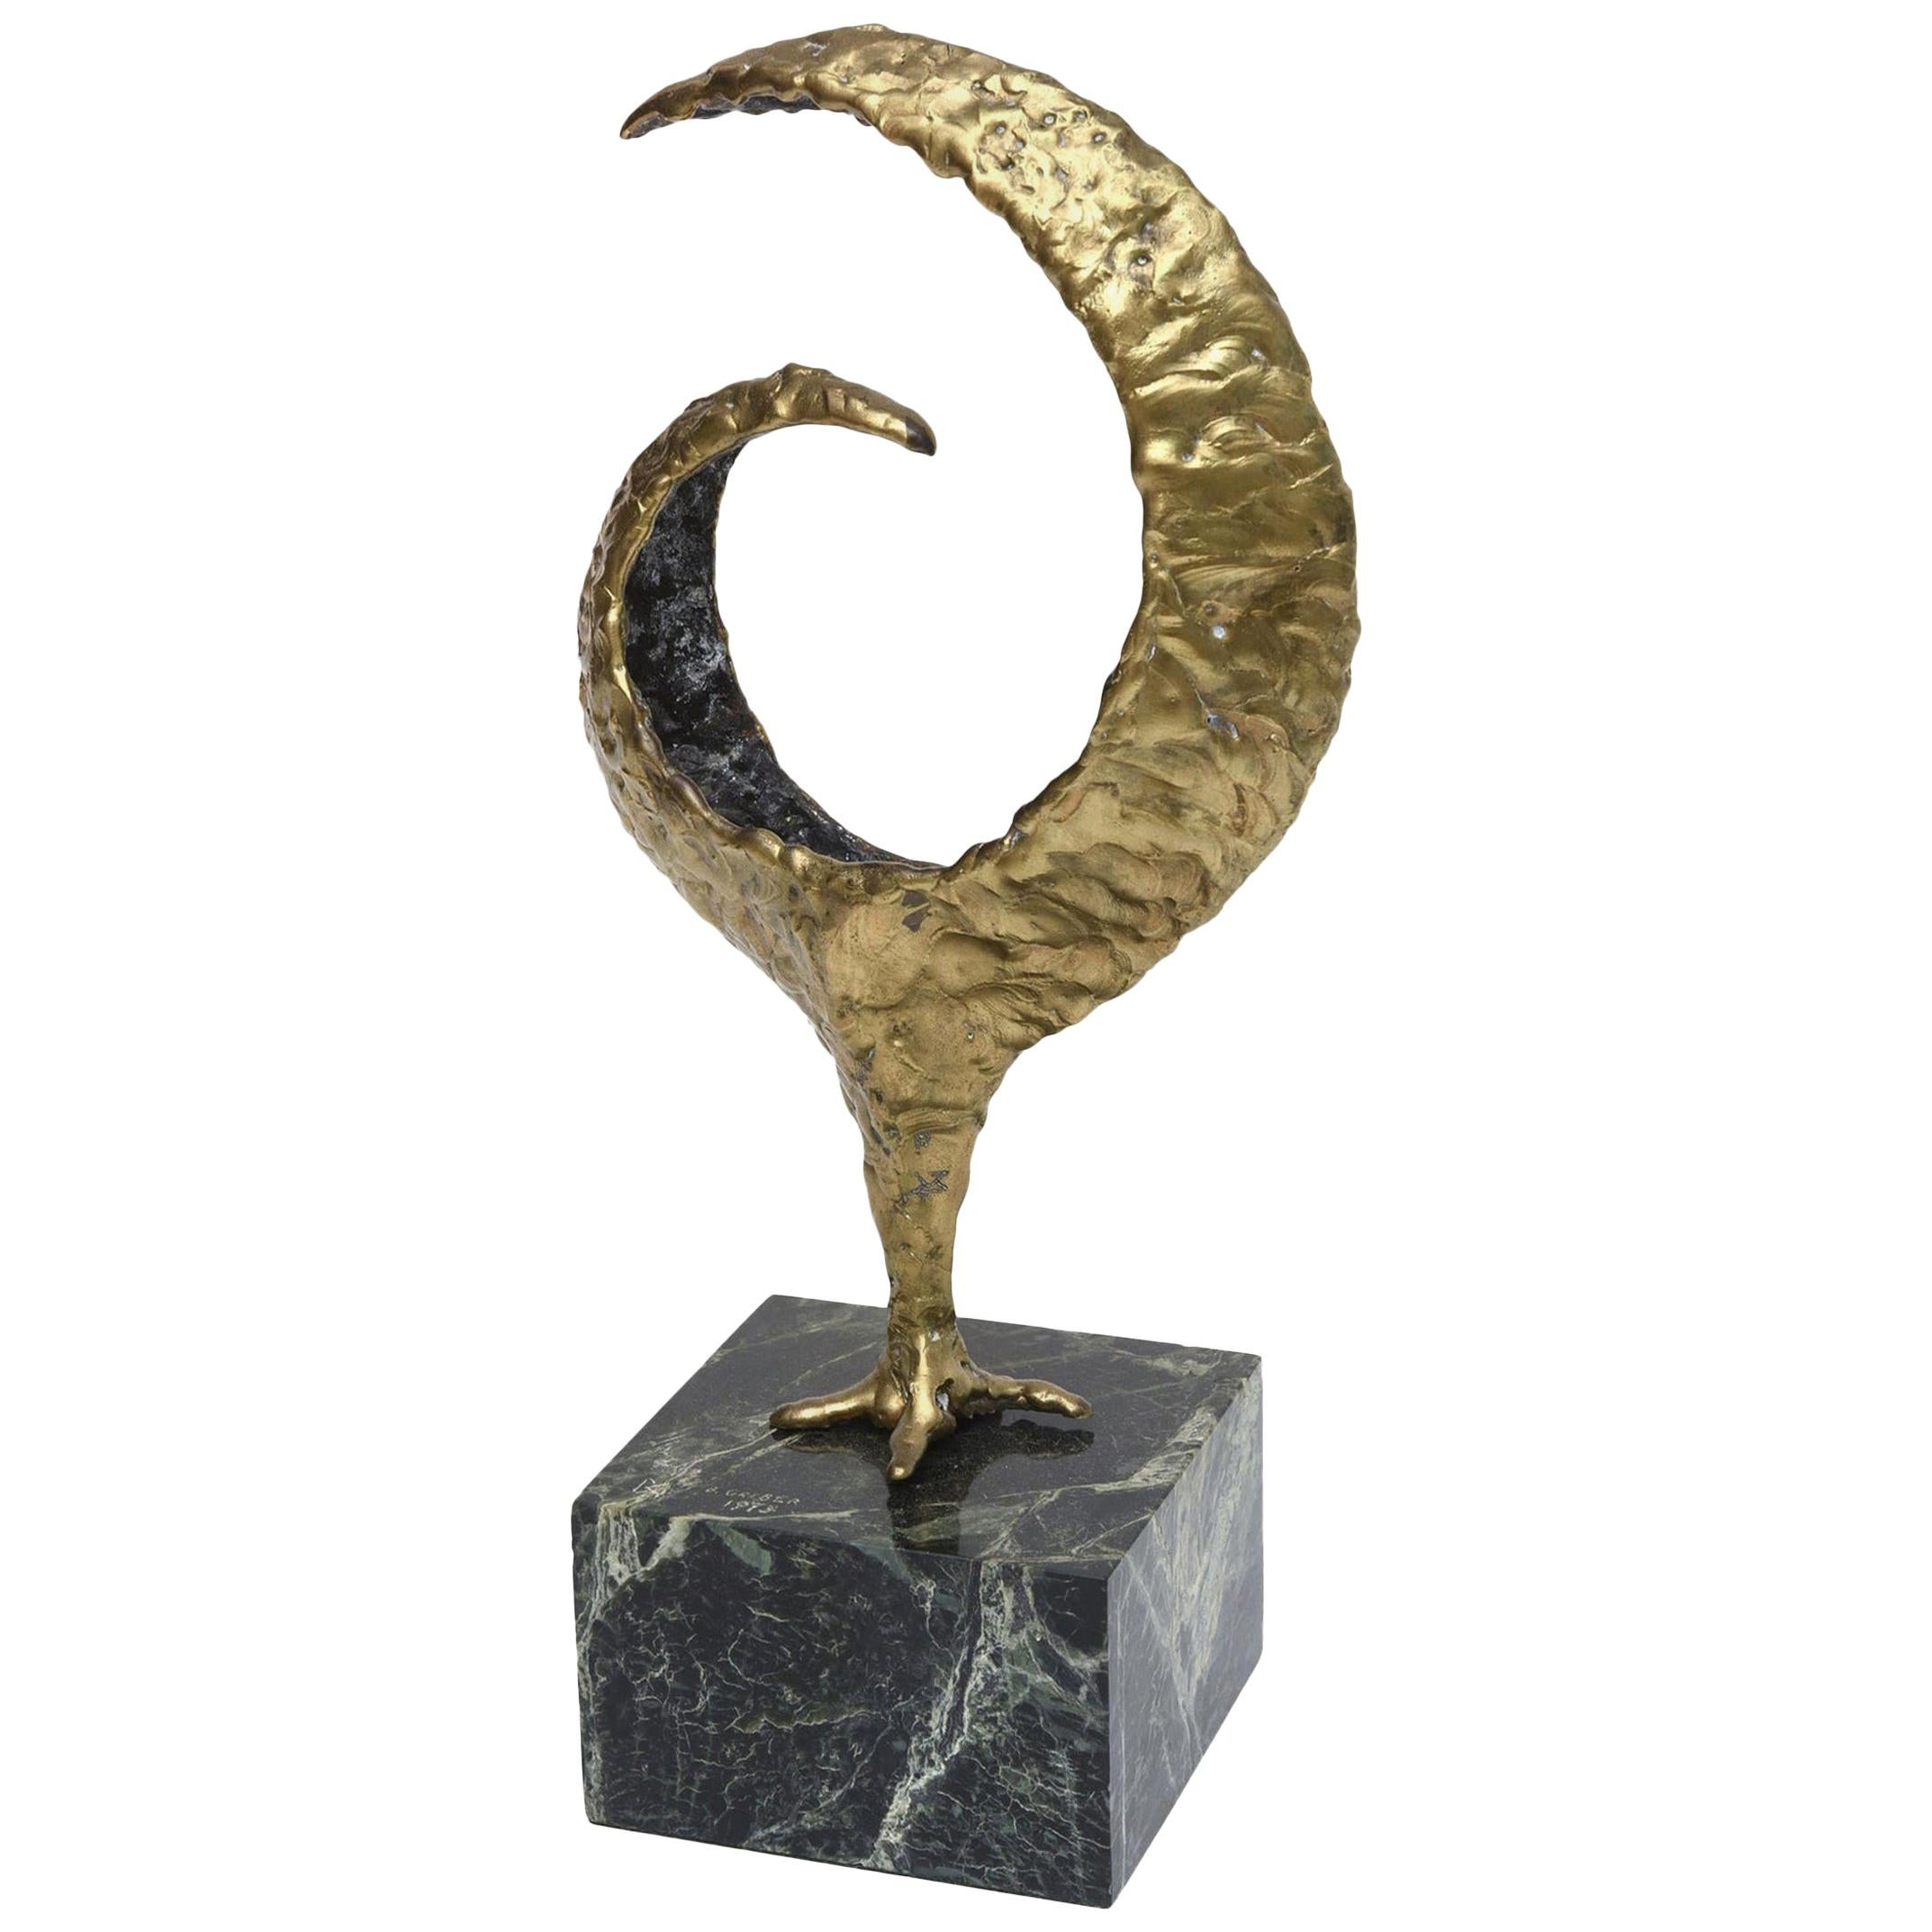 Molten Bronze and Variegated Marble Signed Sculpture Vintage